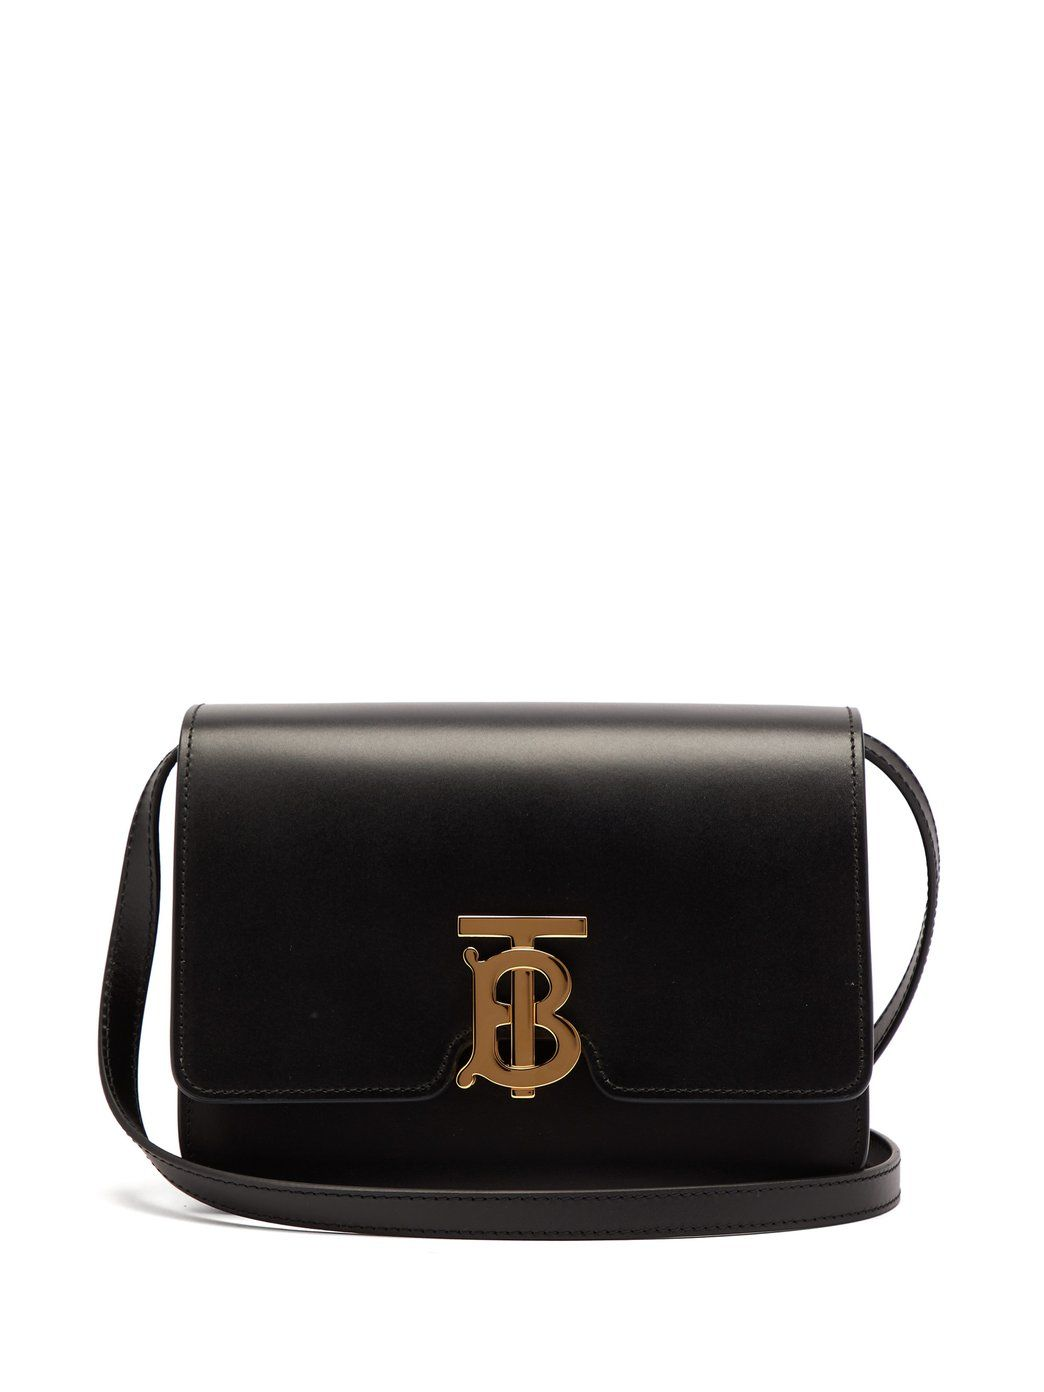 burberry-tb-bag-small-black-leather